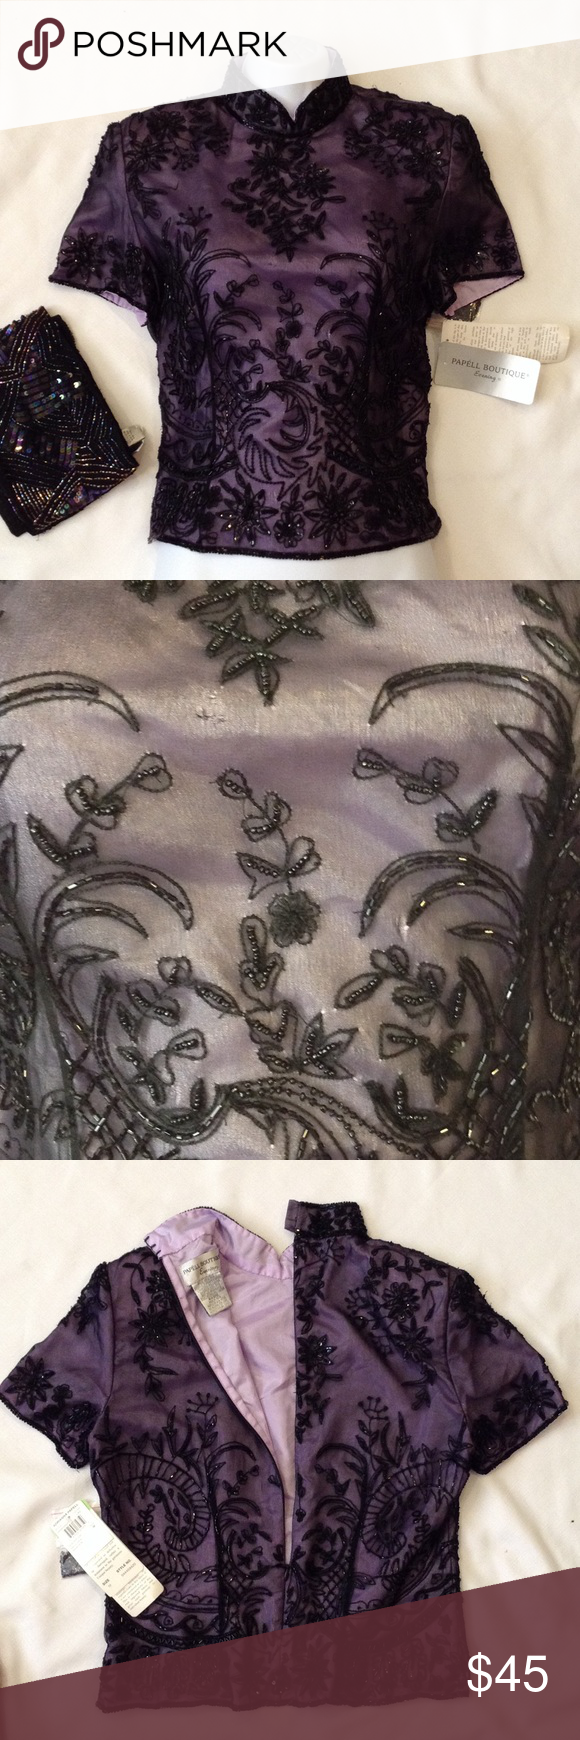 Adrianna Papell Beaded Silk Top NWT Silk lavender top with deep purple beaded overlay in a paisley illusion, zipper back. Excellent condition with some irregularity and variations in the fabric and hand worked ornamentation. Extra beads included, did not see any loose beads. Adrianna Papell Tops